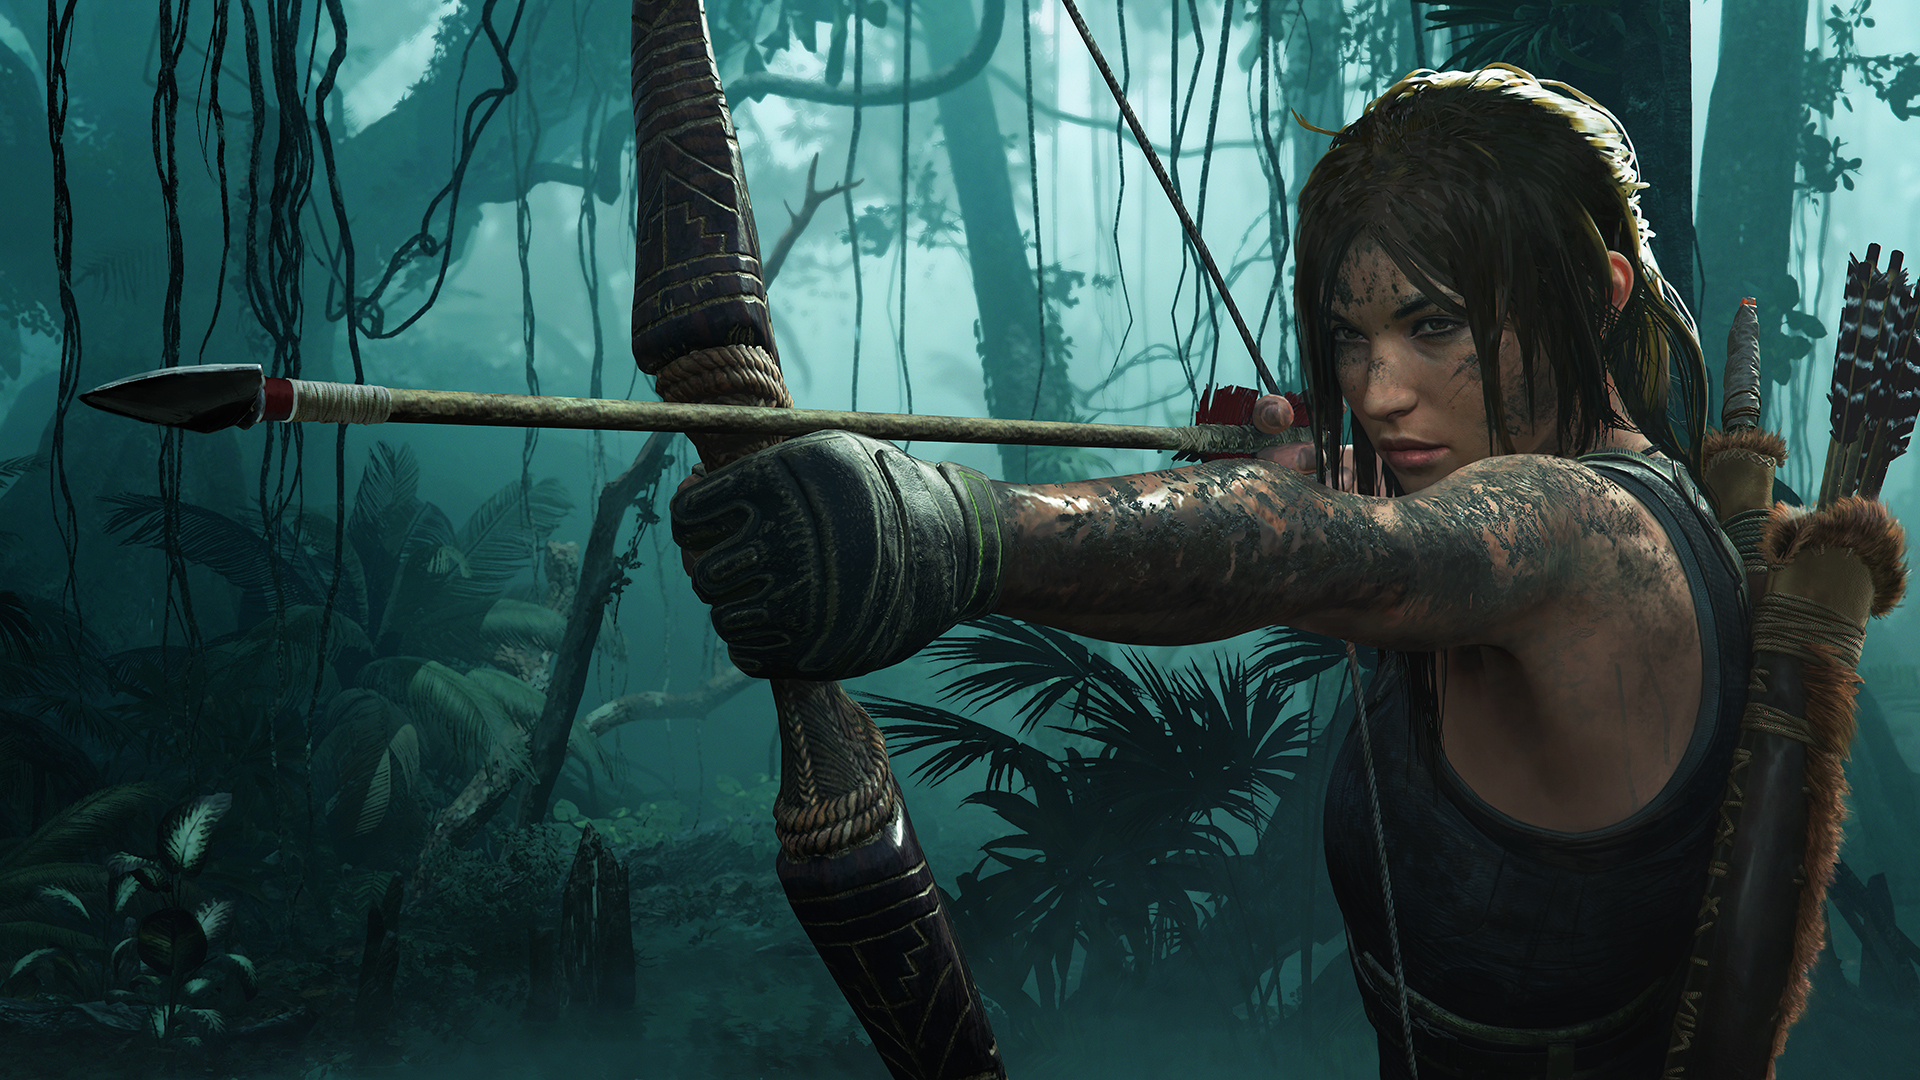 Free Fire Scribe Hired to Write Script for Tomb Raider Movie